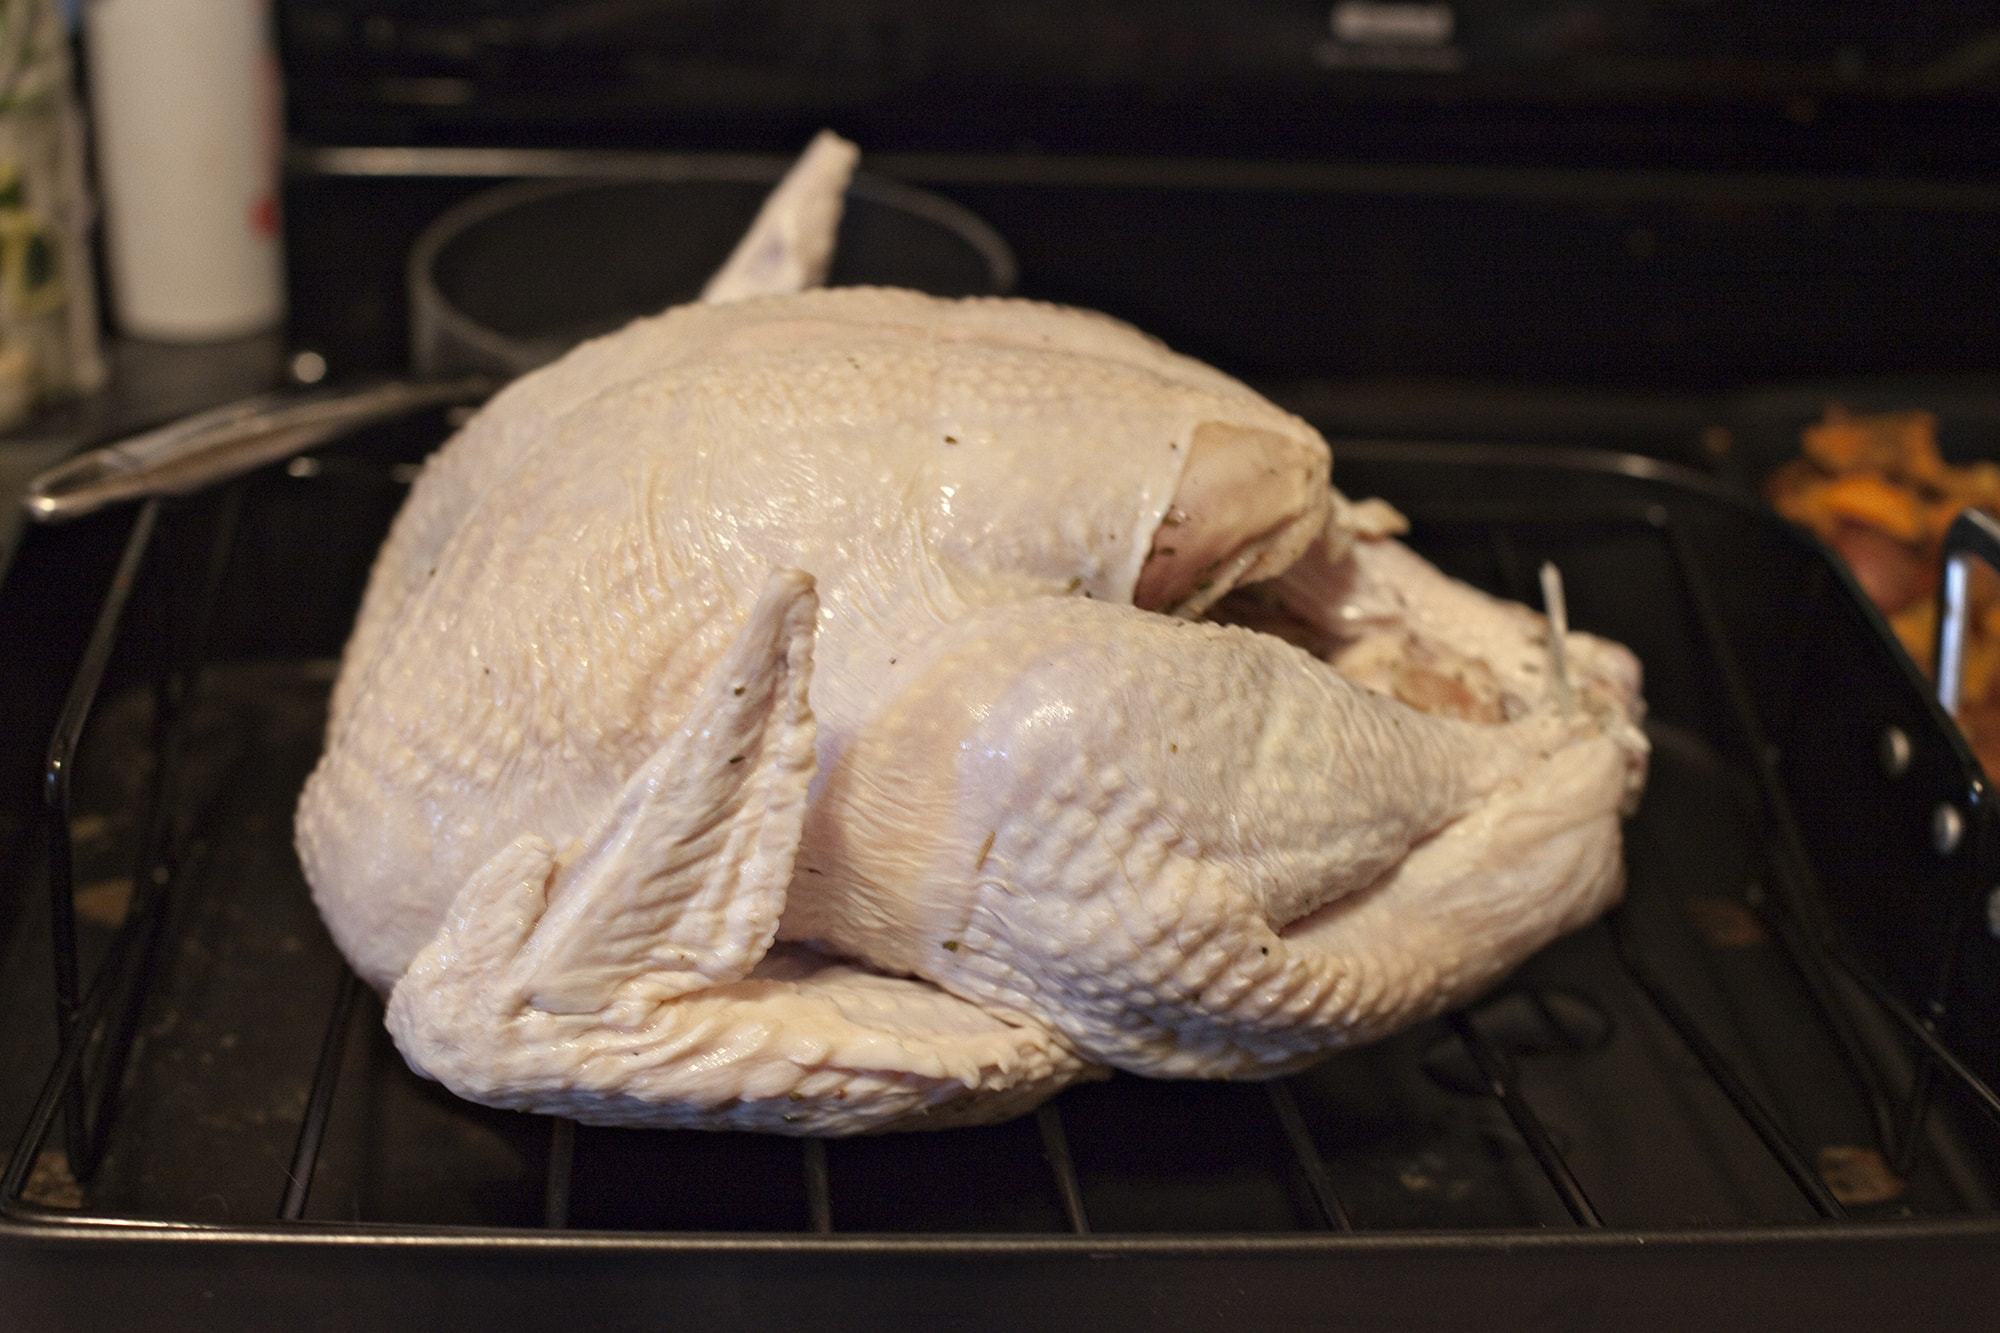 Cooking Thanksgiving Dinner - The turkey is ready to be stuffed